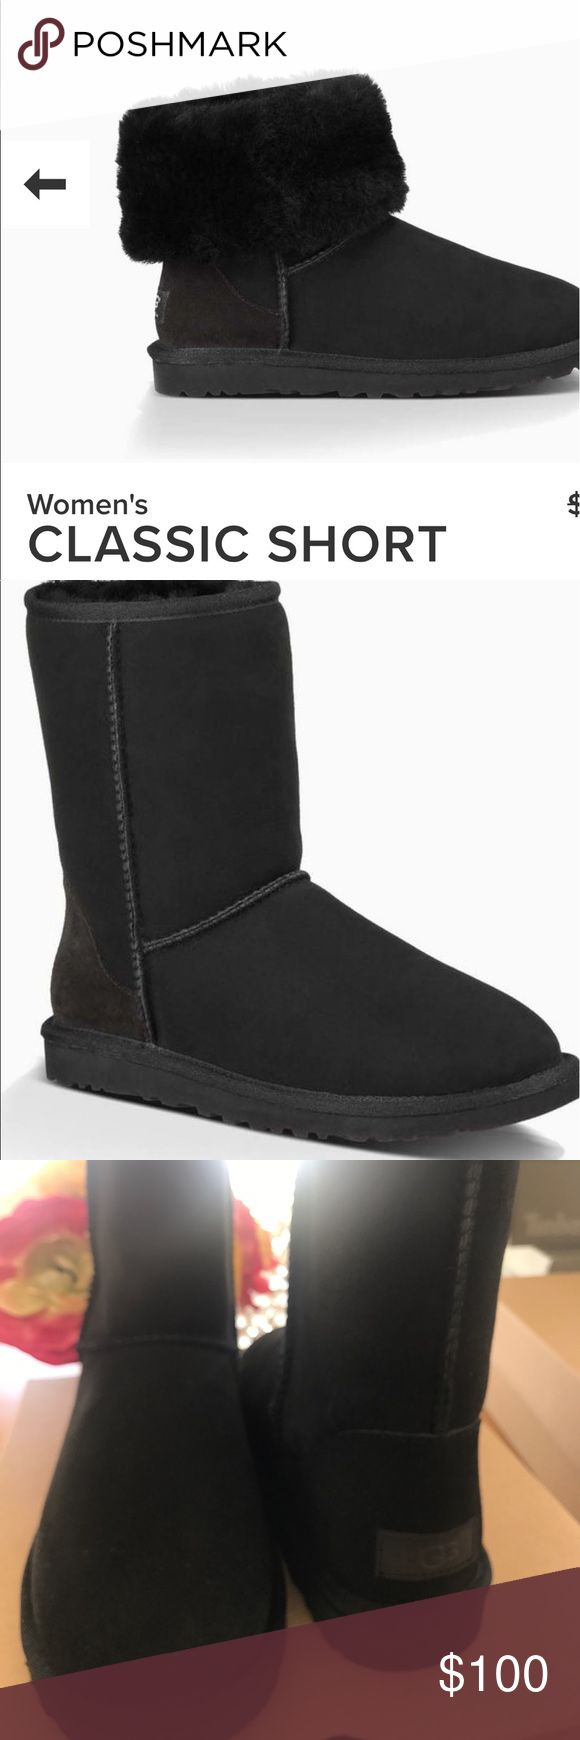 Ugg Classic short II black new Authentic 7 Ugg Classic short II black new Authentic 7 UGG Shoes Ankle Boots & Booties